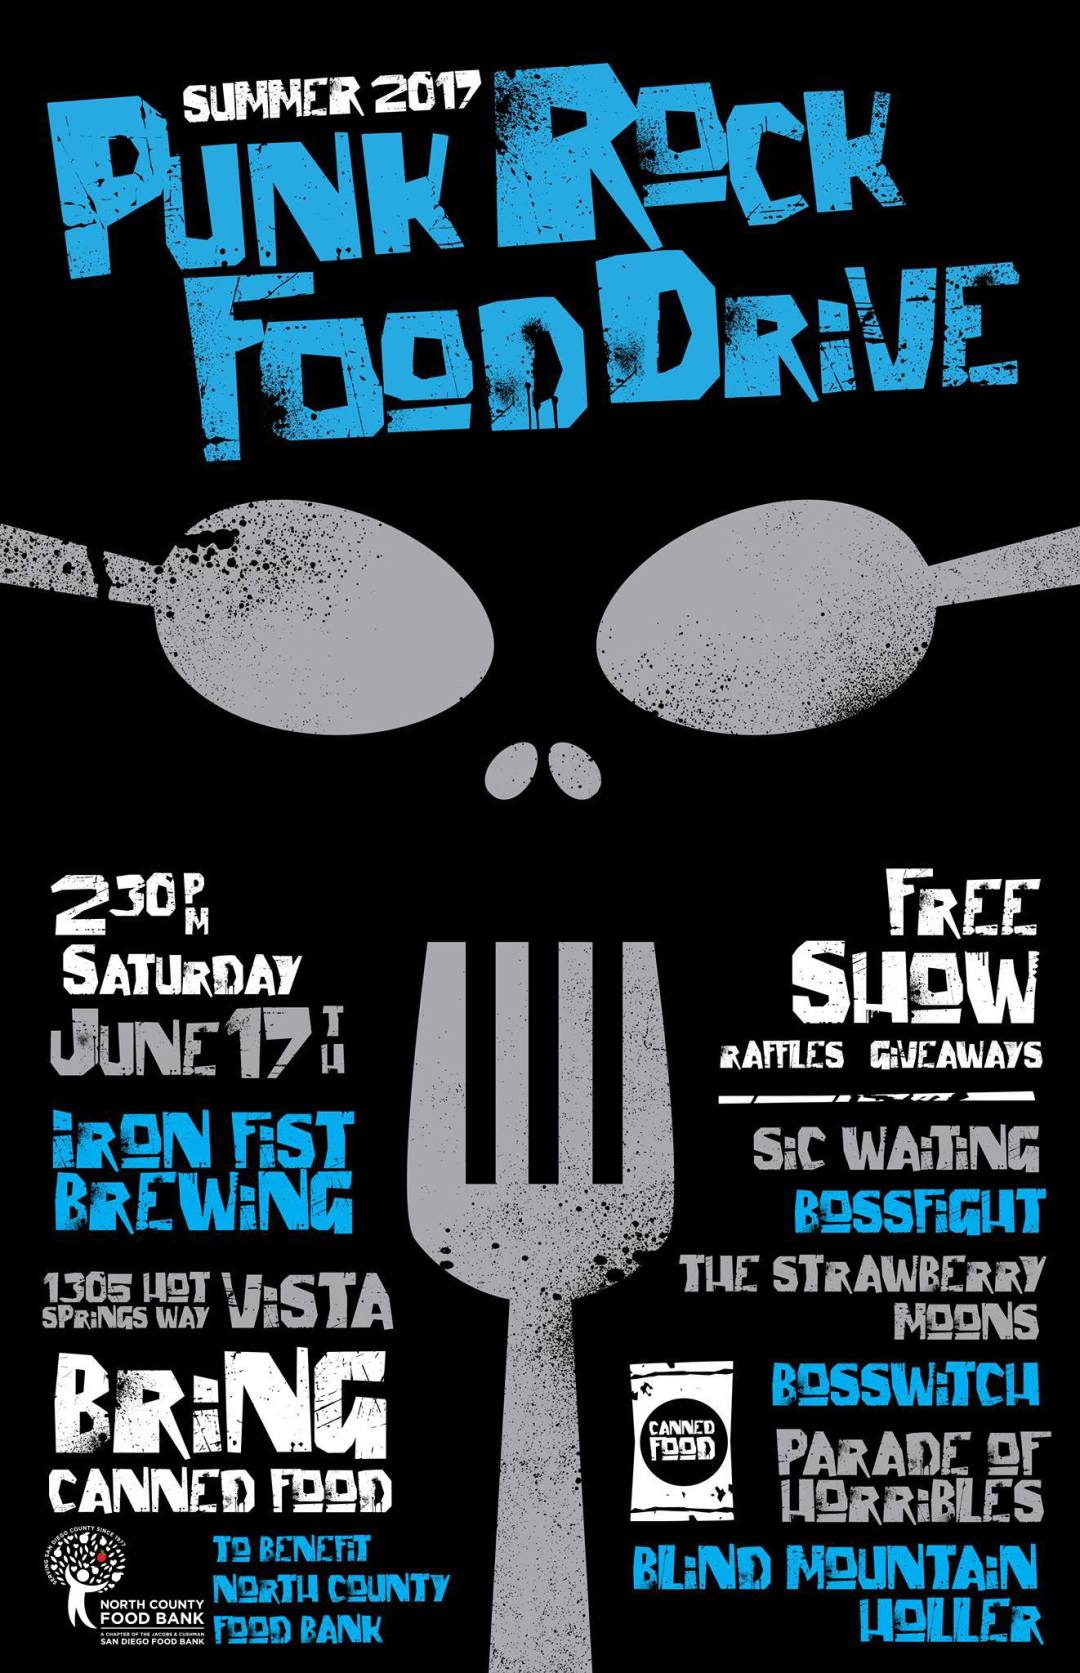 Summer 2017 Punk Rock Food Drive